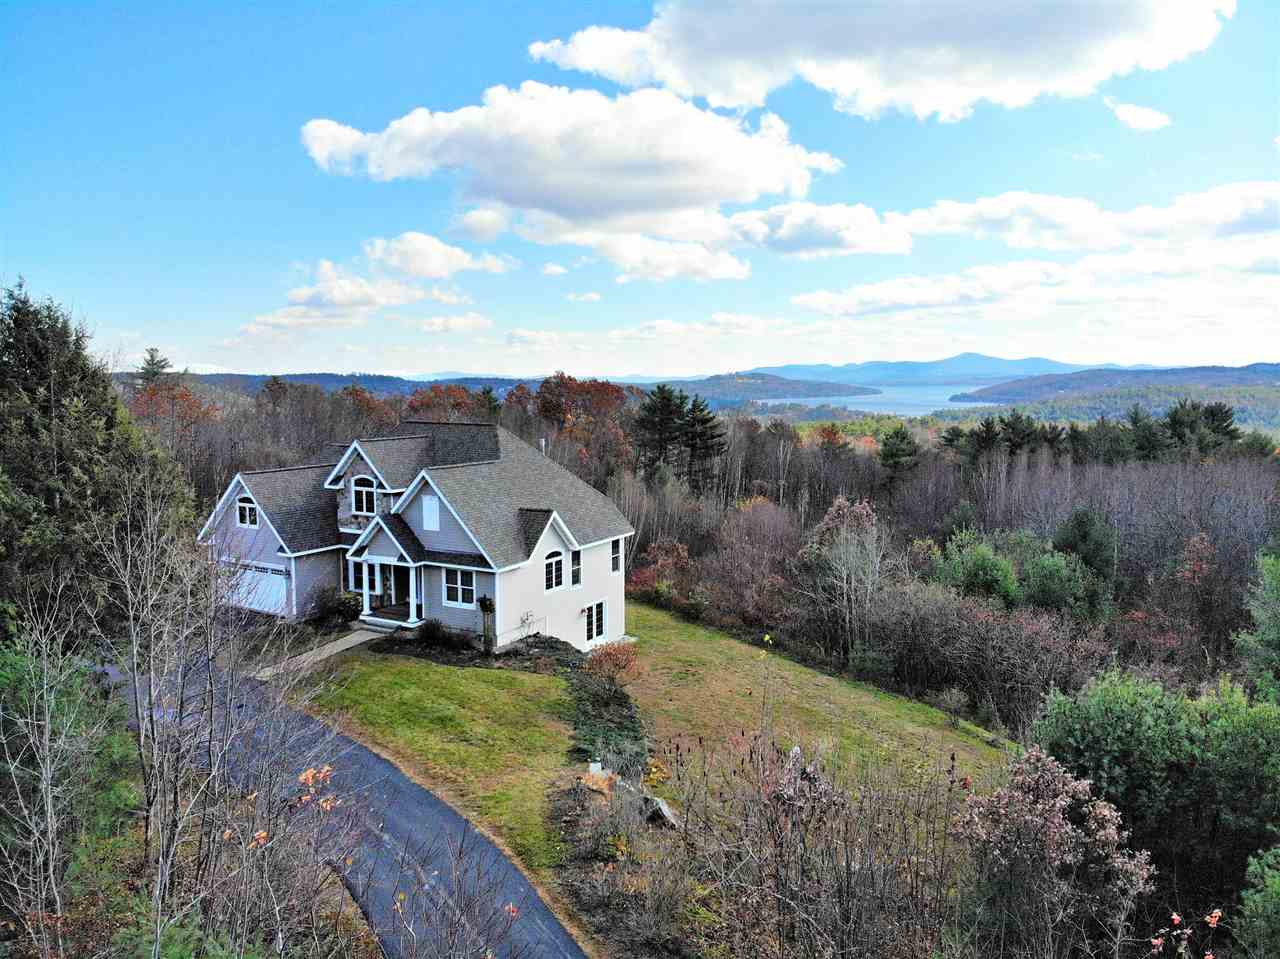 MLS 4786416: 10 Whispering Wind Drive, Center Harbor NH